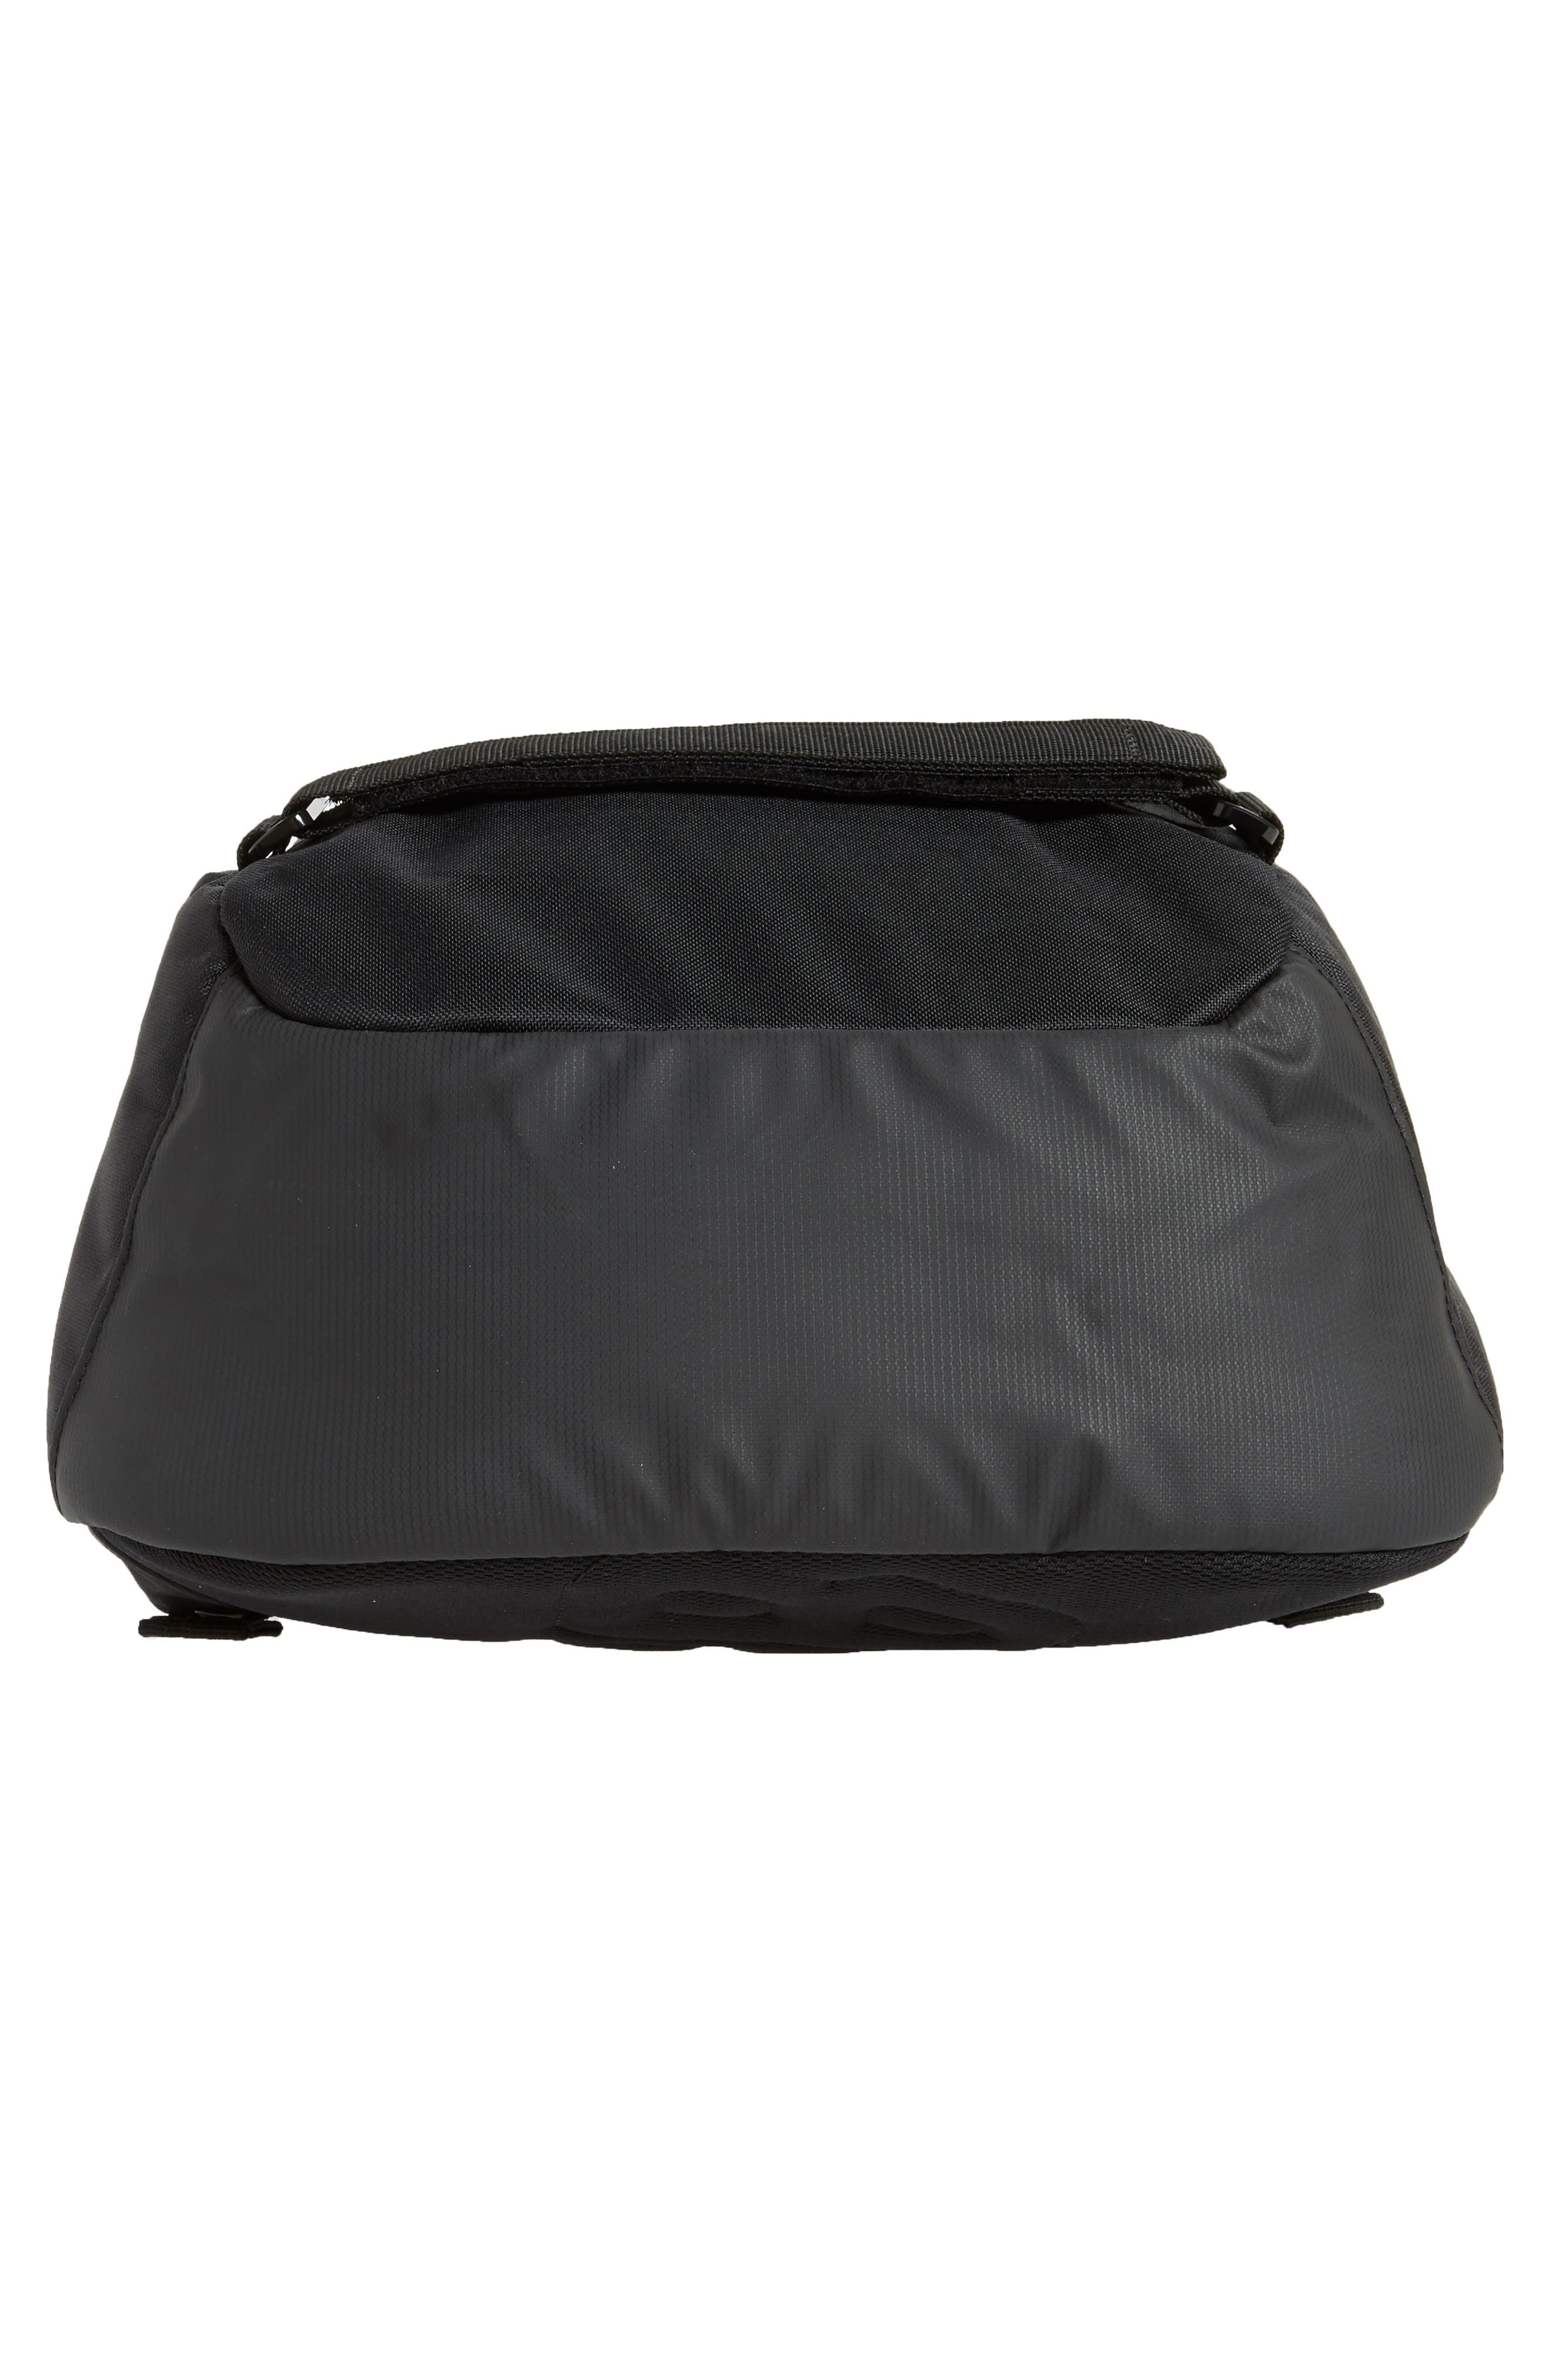 Courthouse Backpack,                             Alternate thumbnail 6, color,                             Black